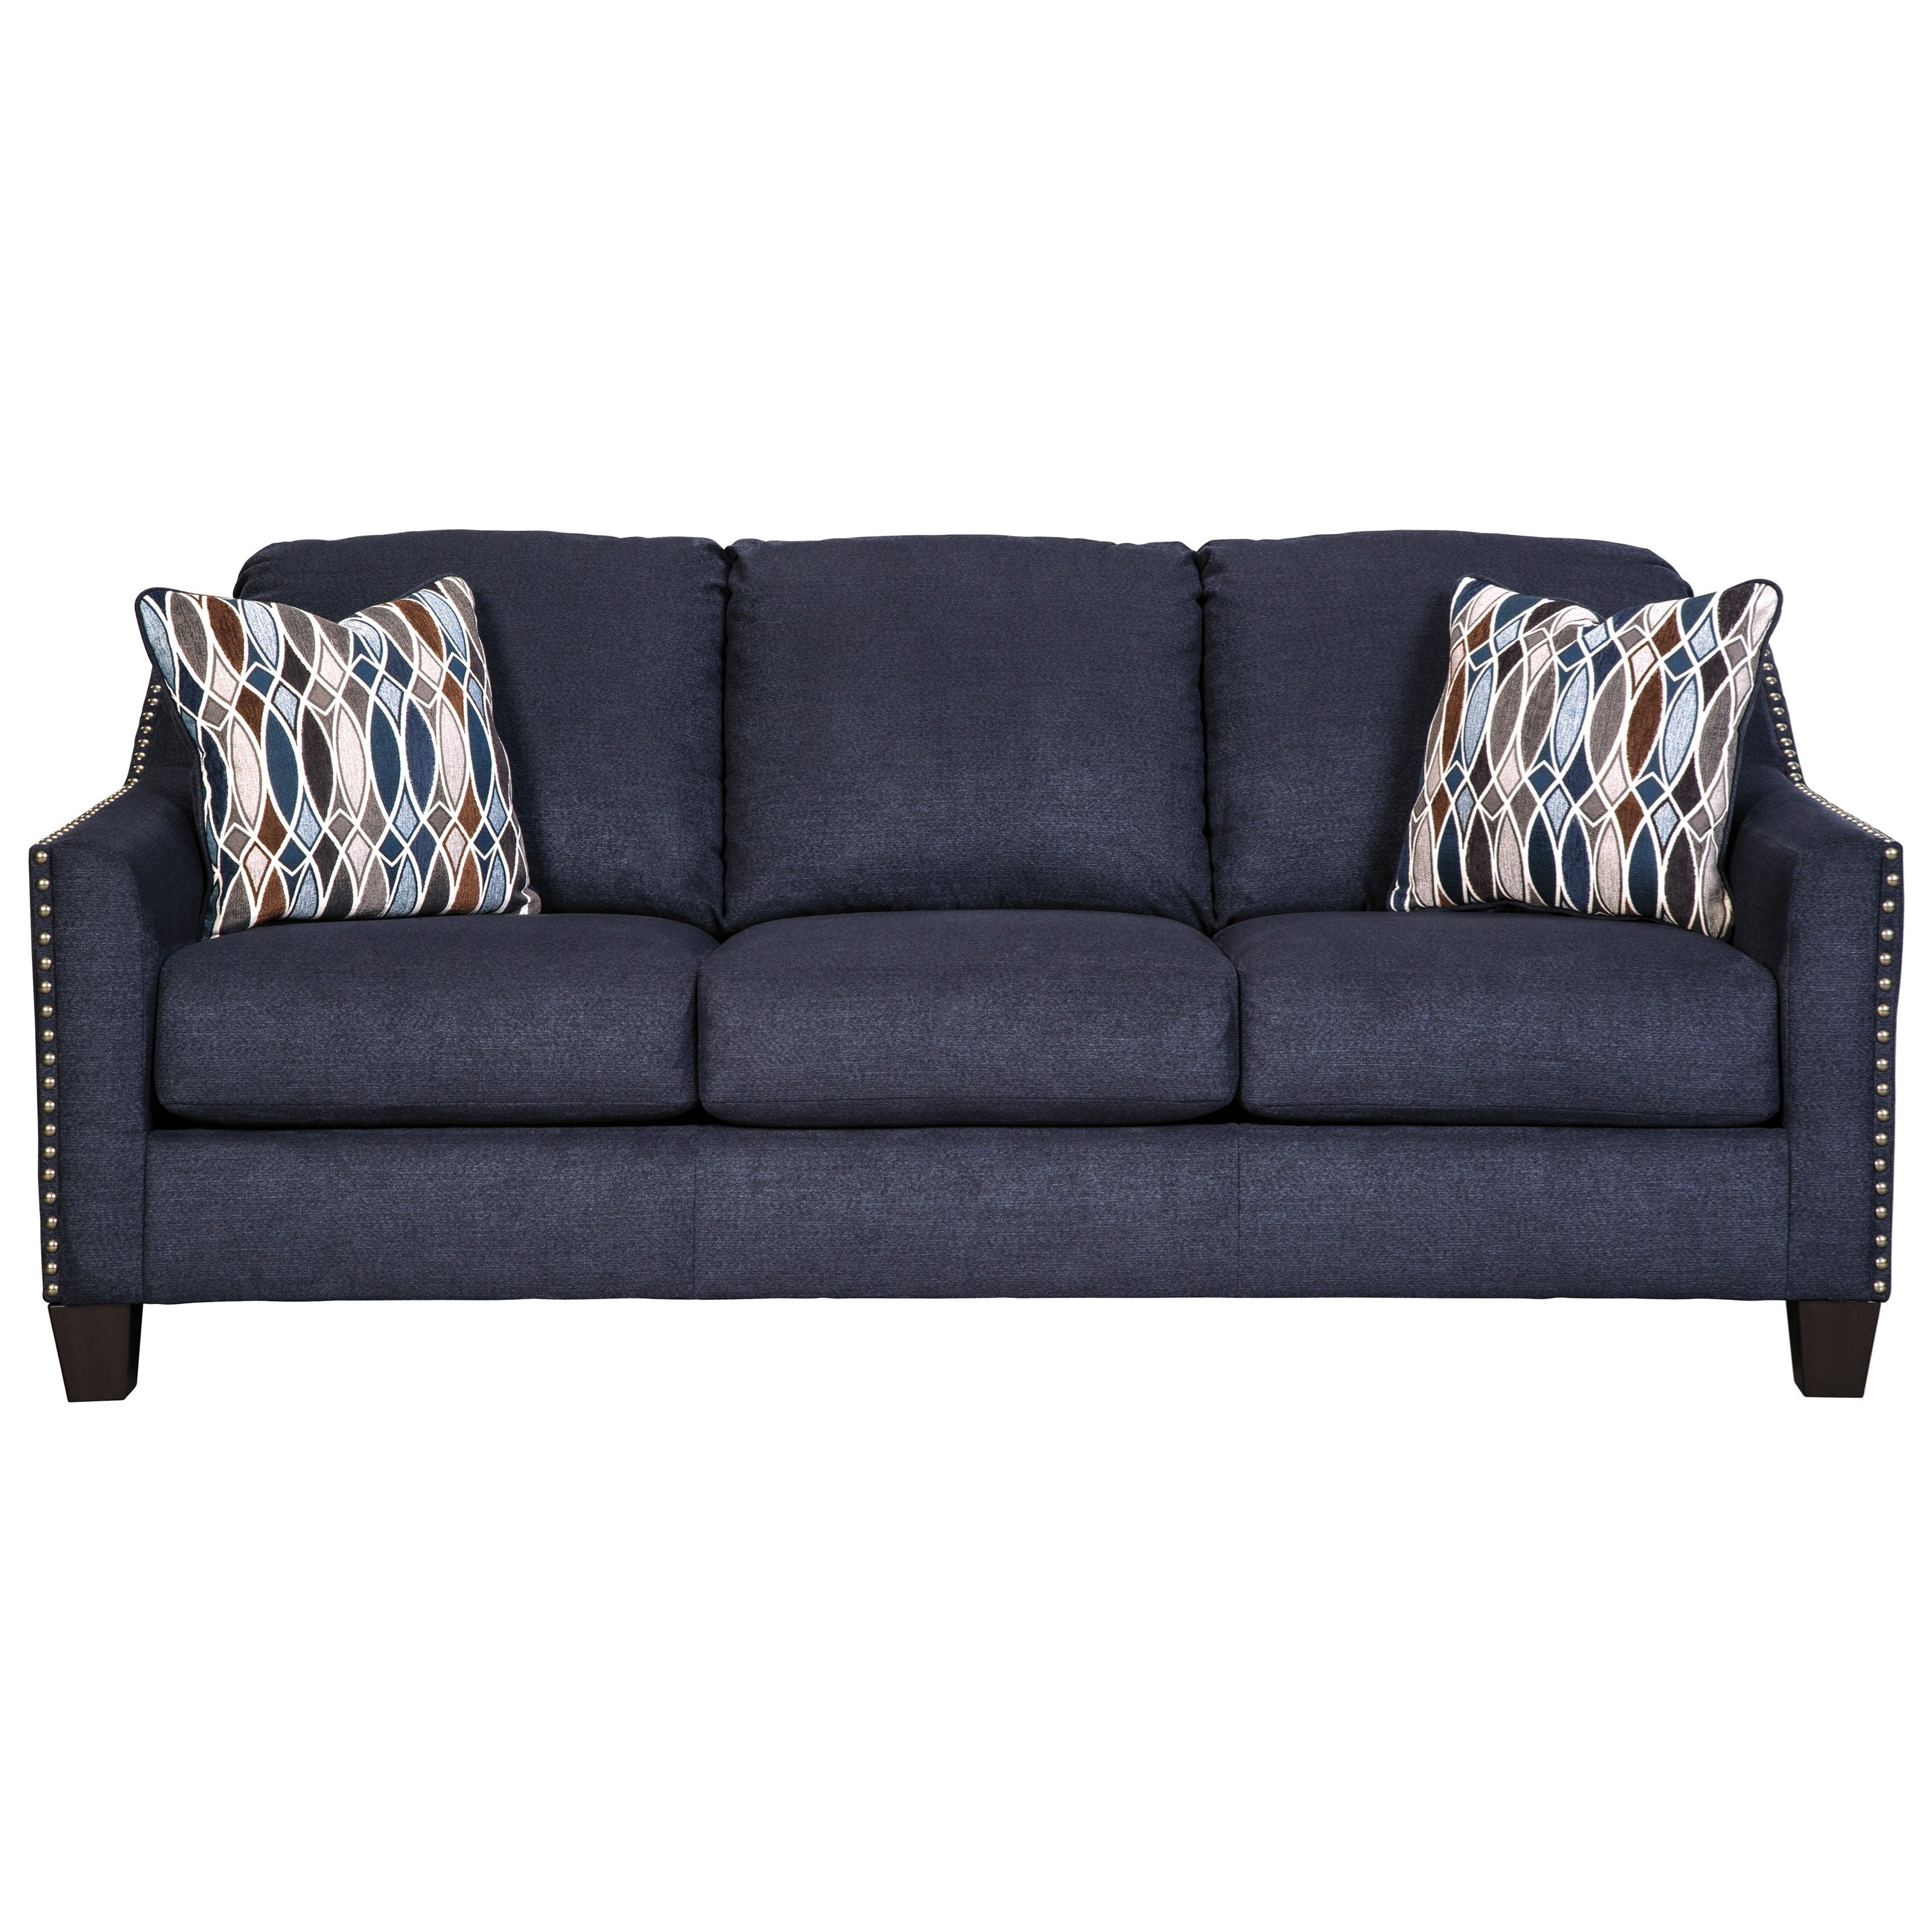 Creeal Heights Sofa by Benchcraft at Northeast Factory Direct